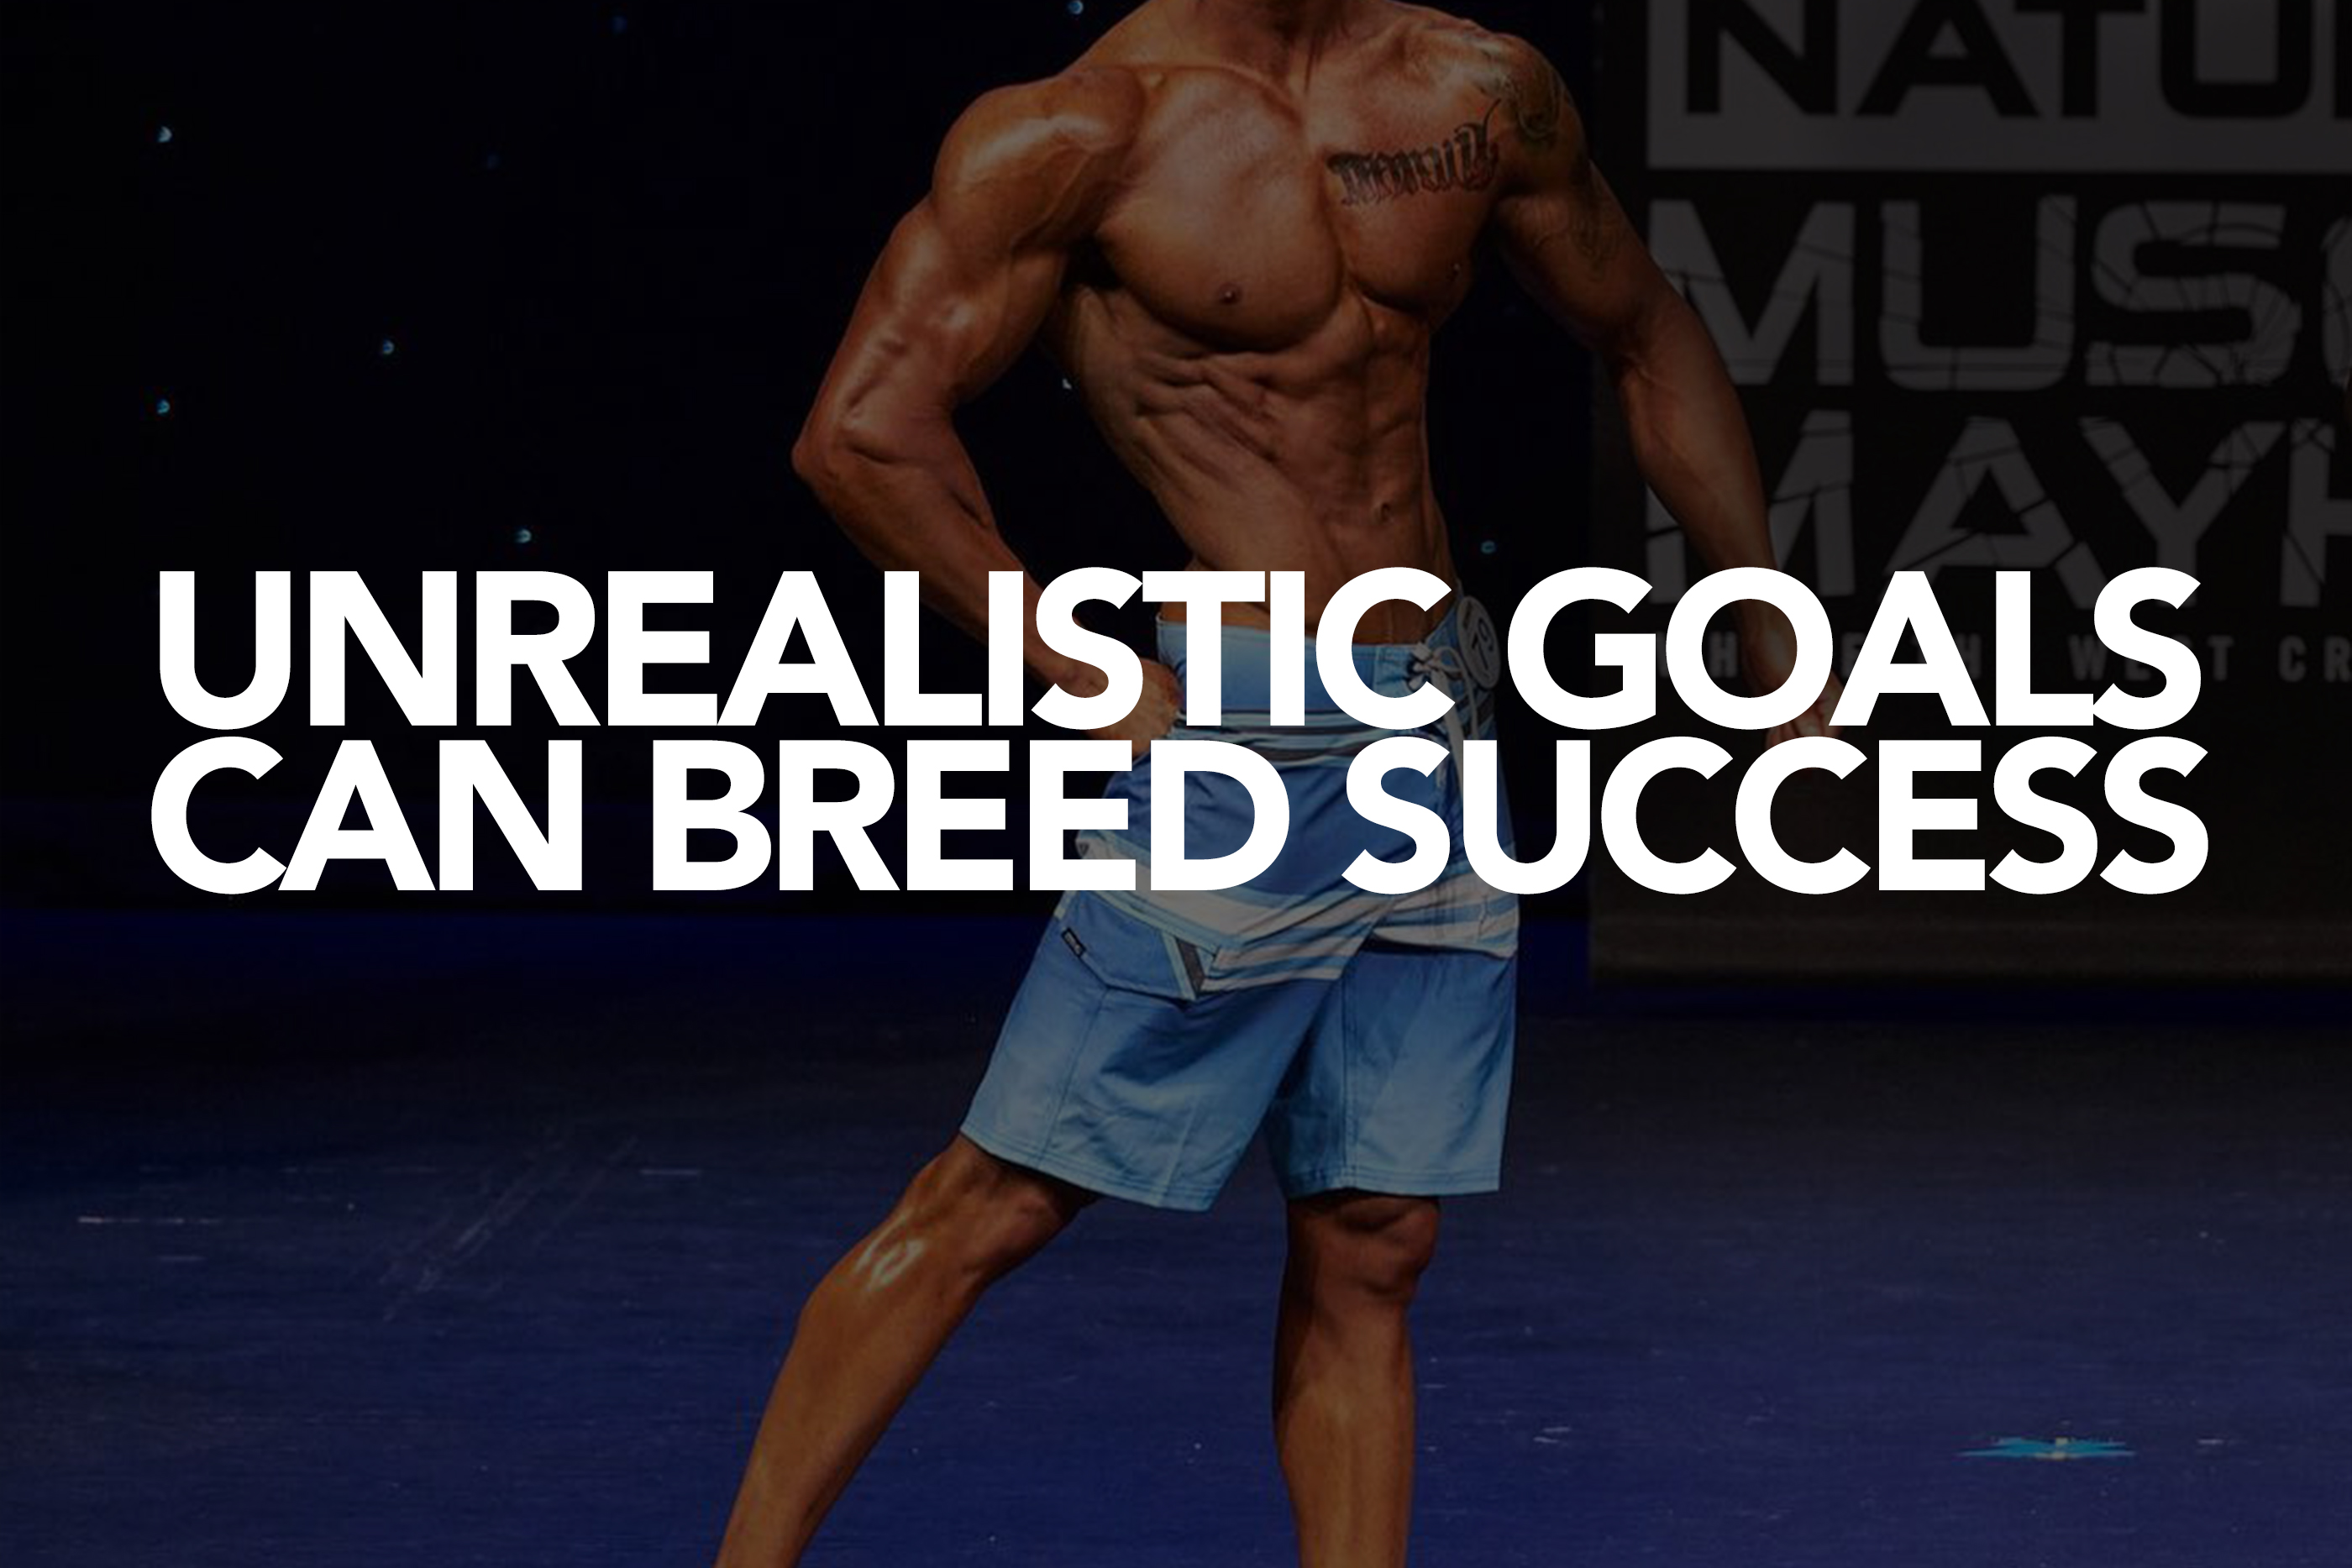 UNREALISTIC GOALS CAN BREED SUCCESS